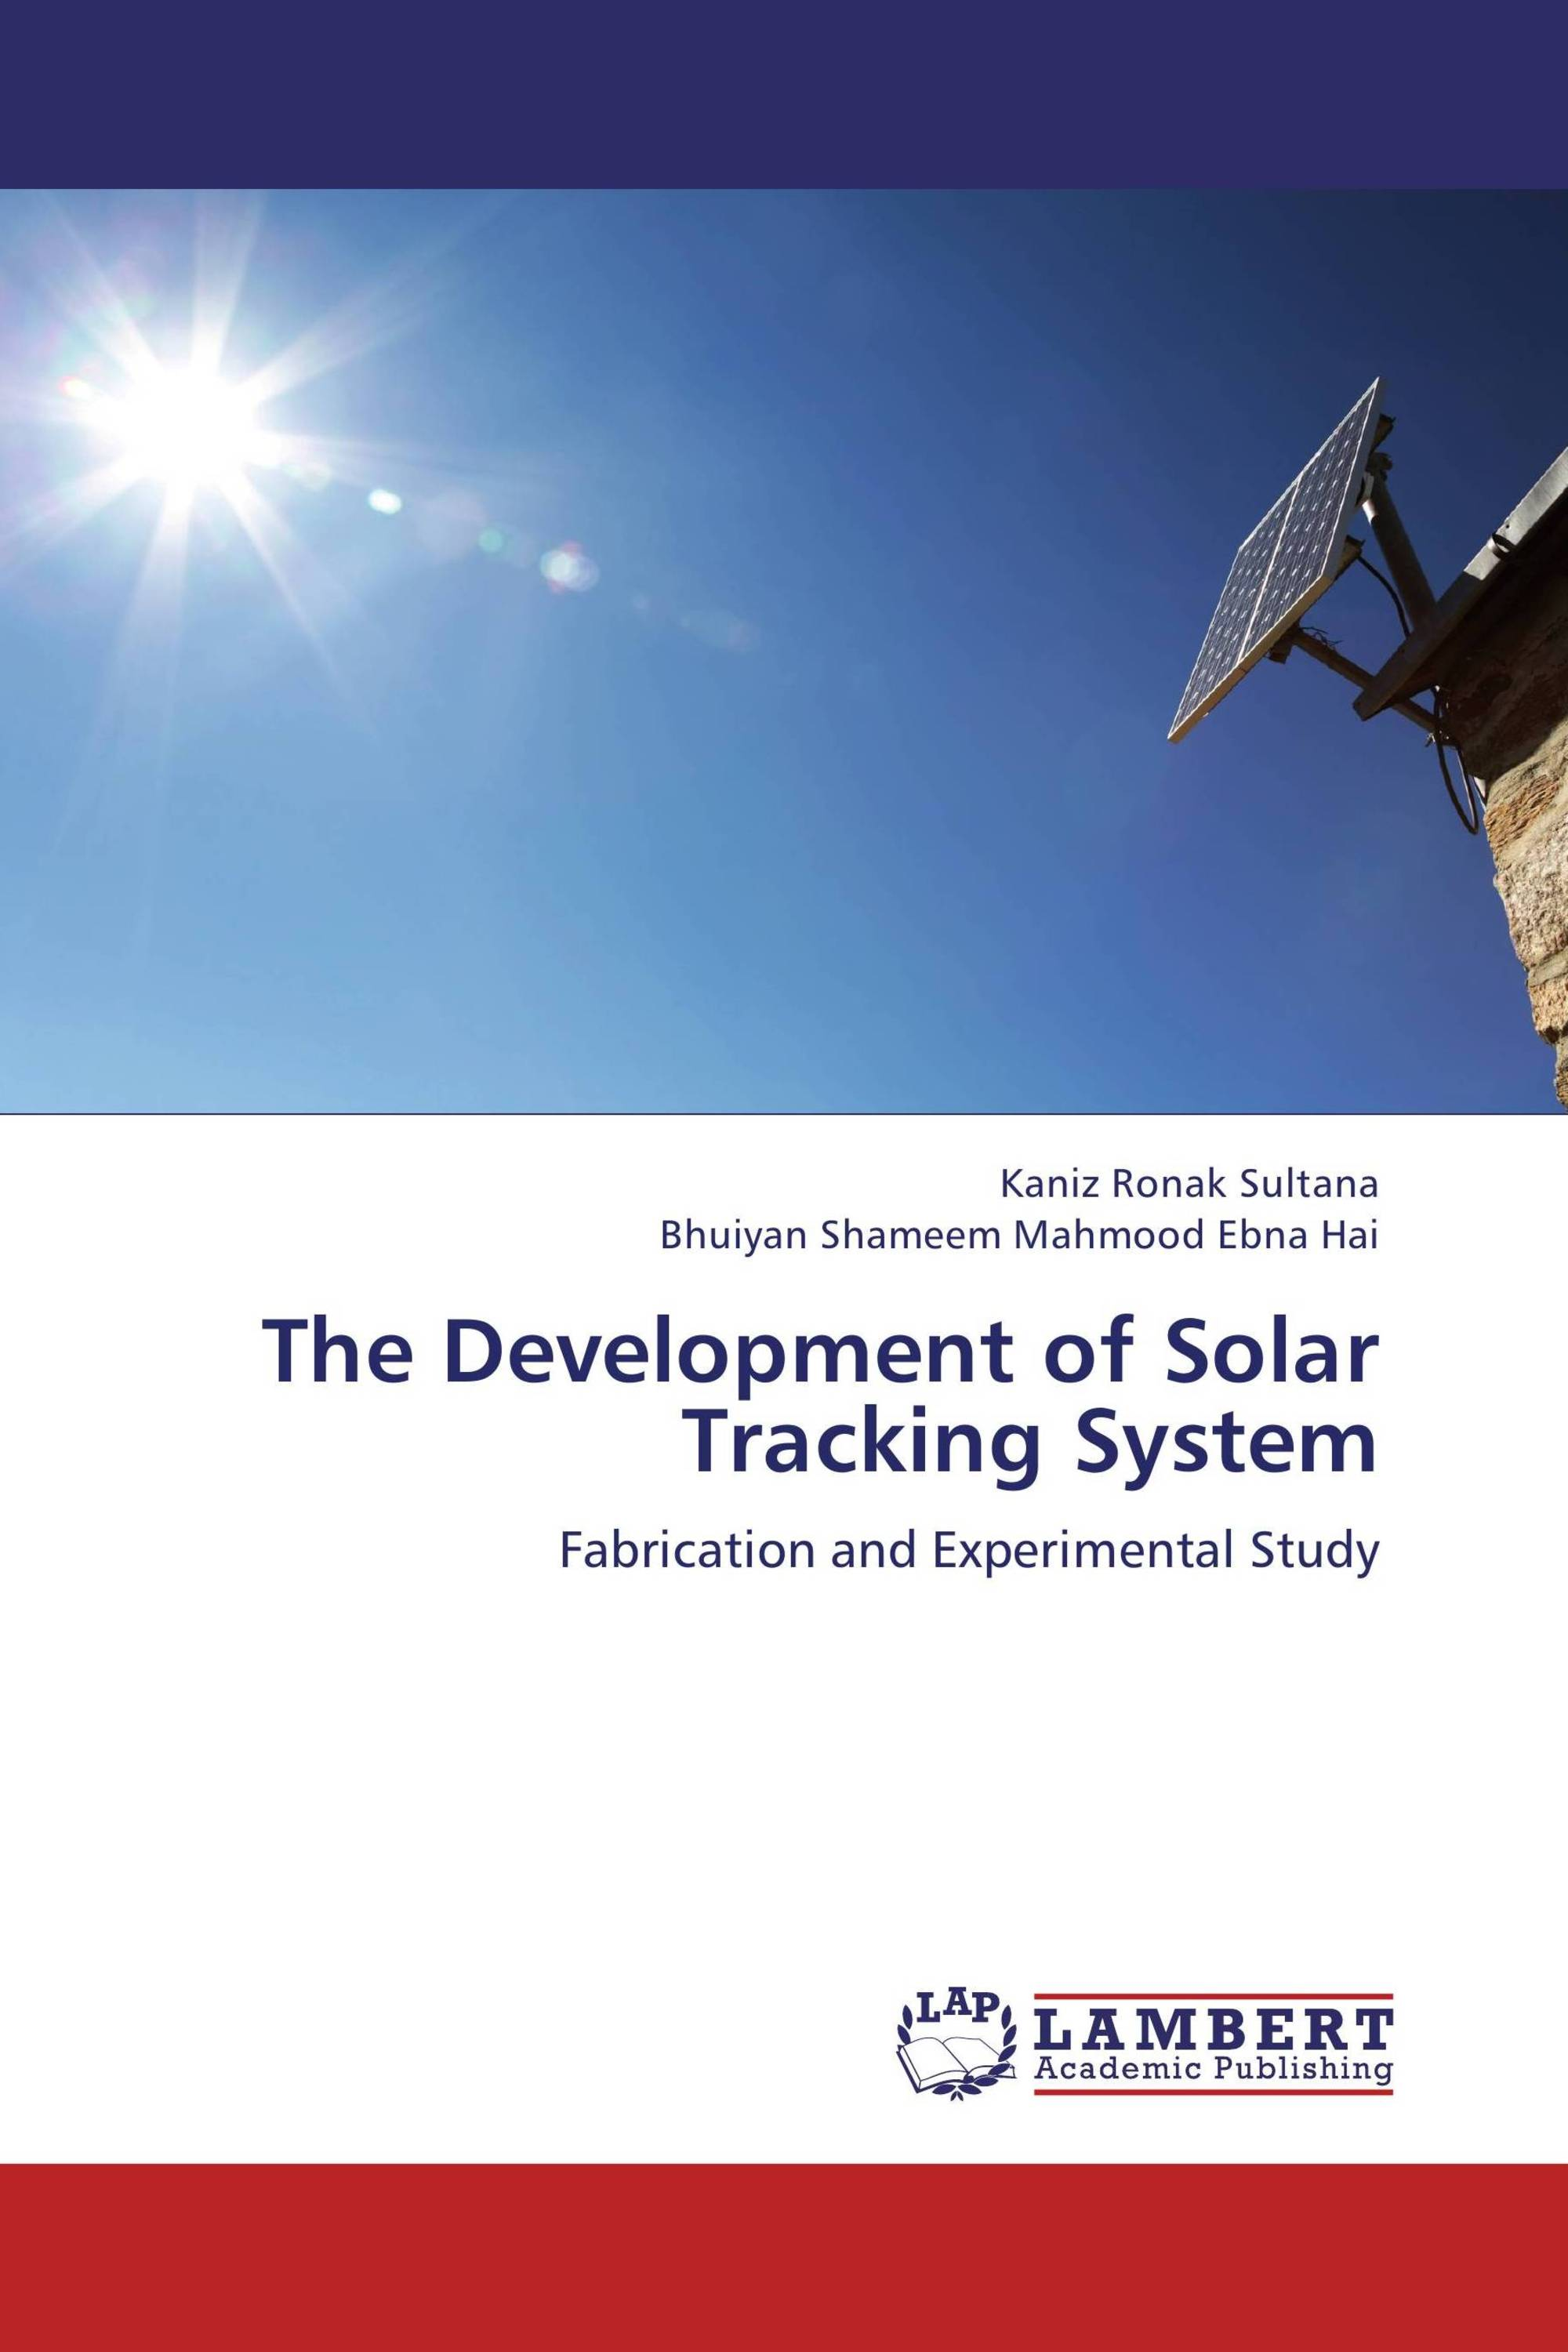 The Development of Solar Tracking System